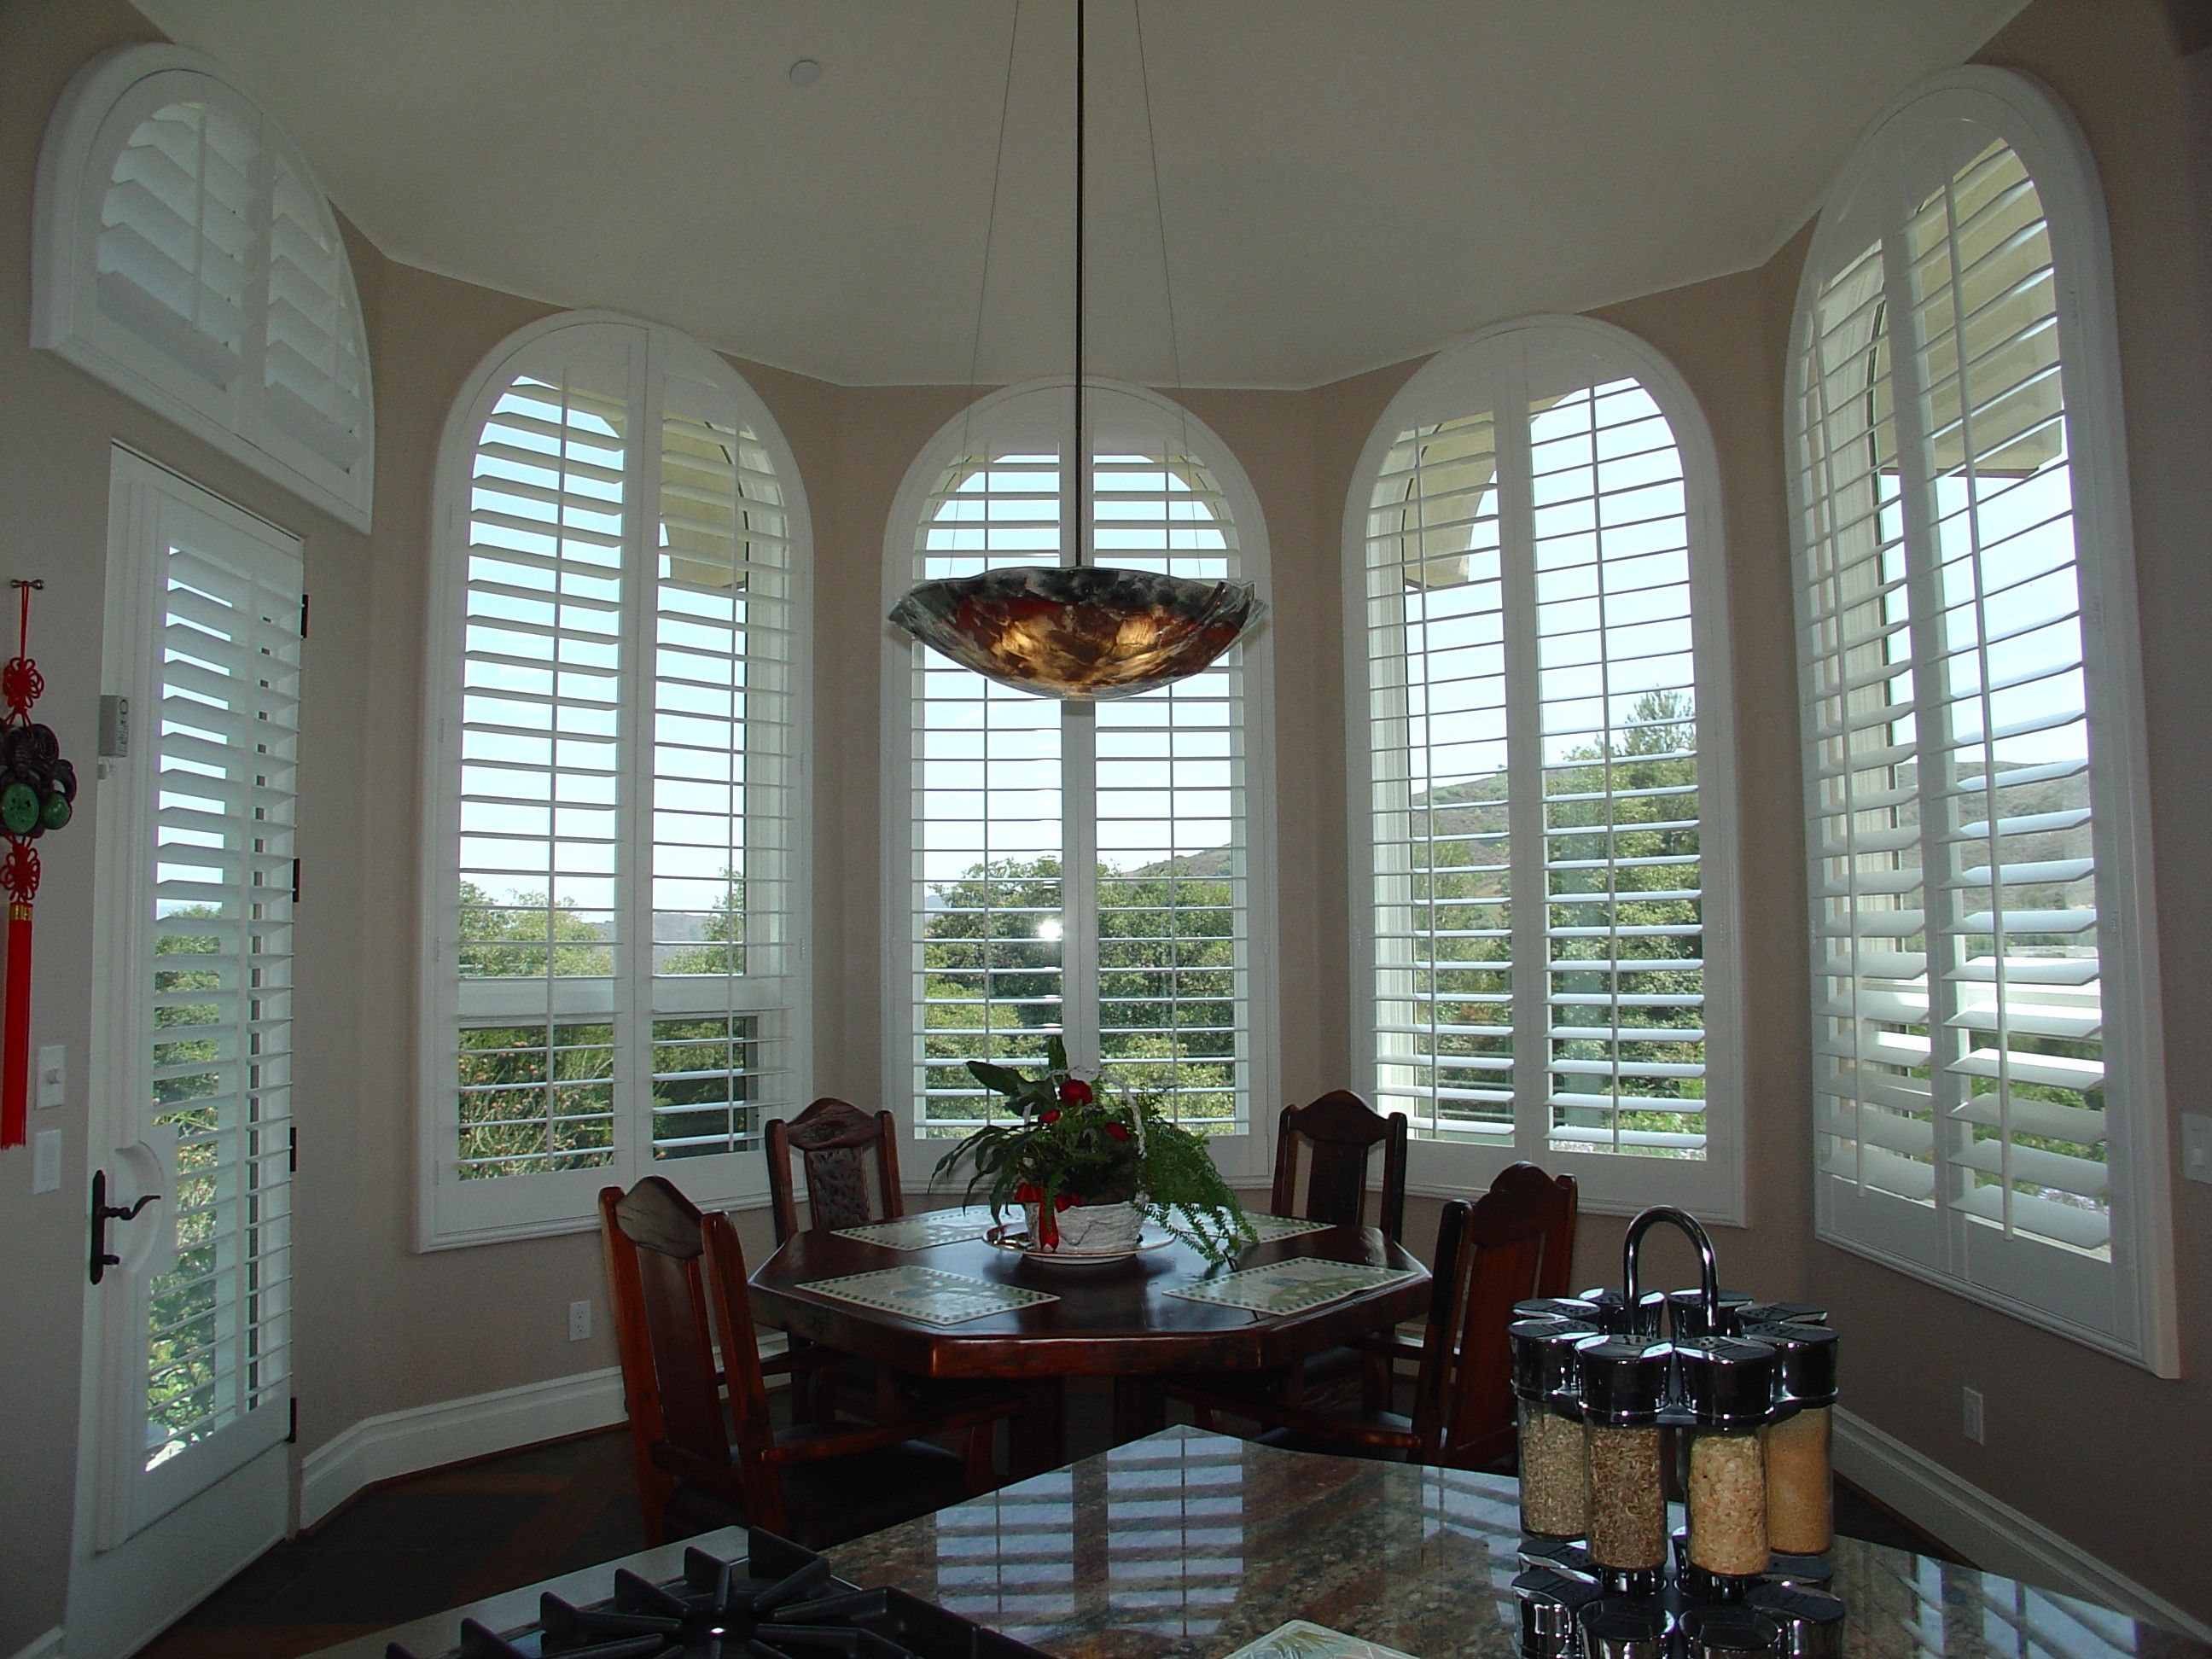 Window coverings over blinds  stunning arched plantationshutters are perfect in this beautiful